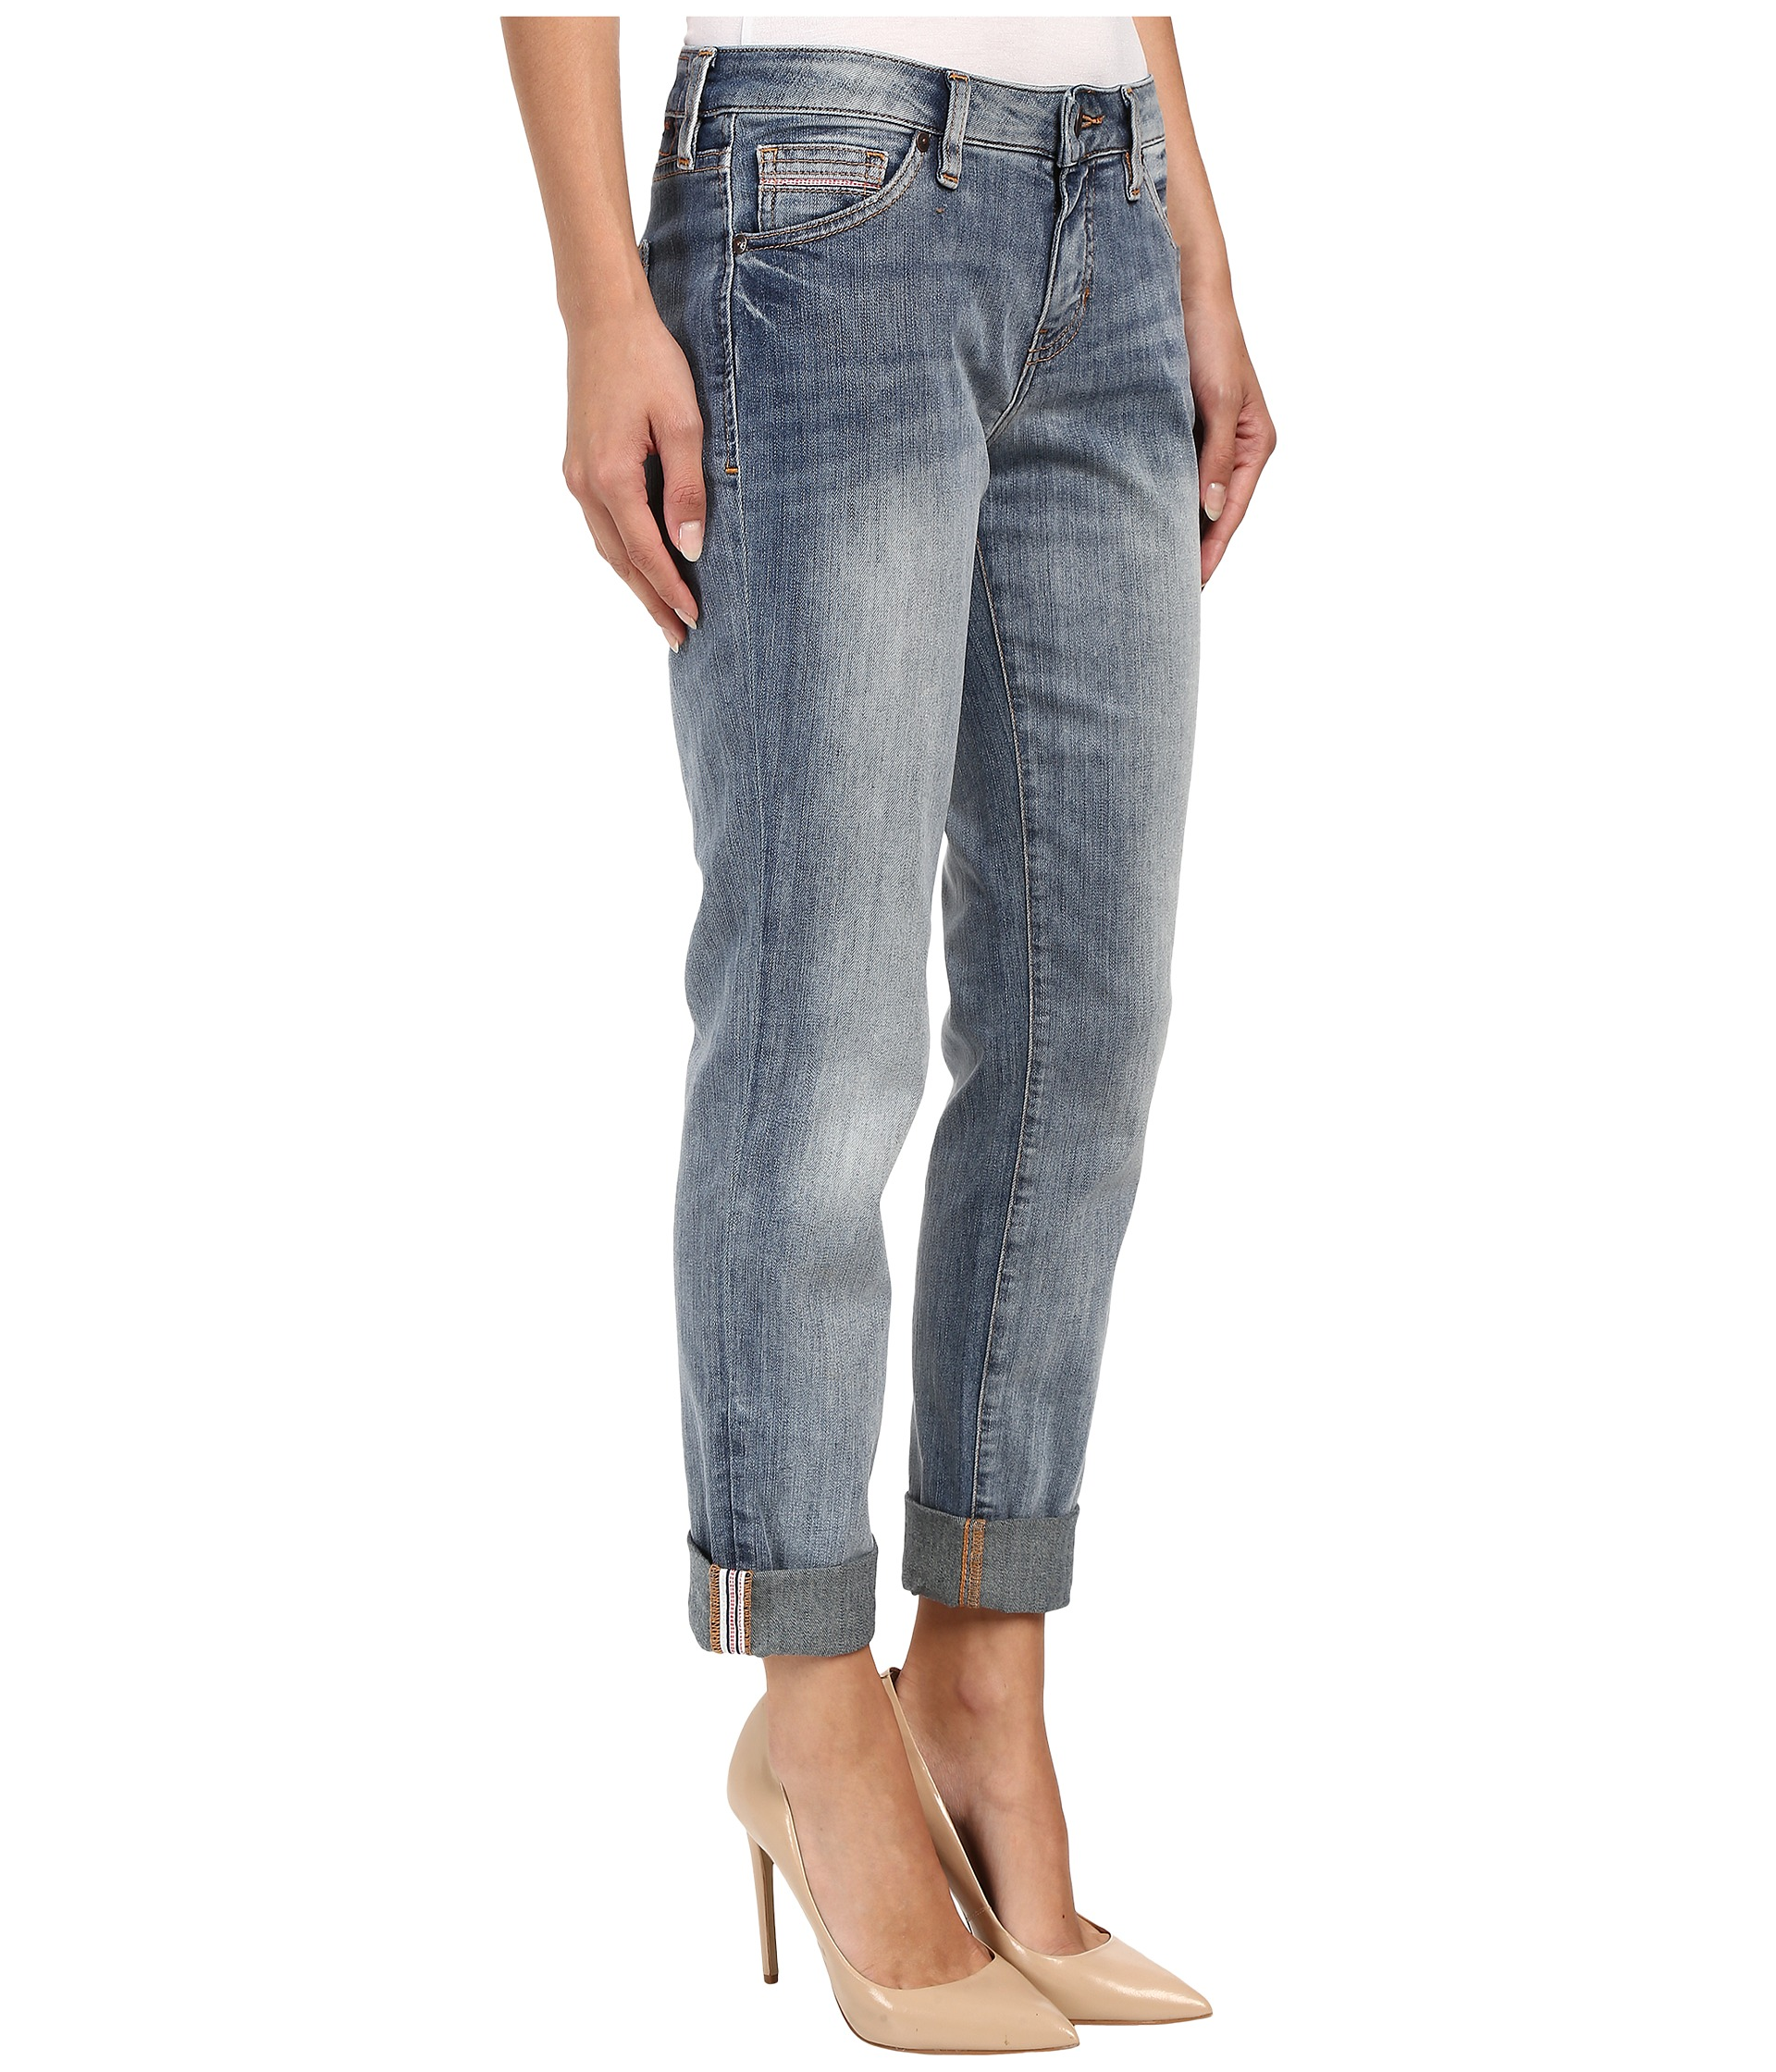 Jag Jeans Alex Boyfriend Platinum Denim in Saginaw Blue at Zappos.com